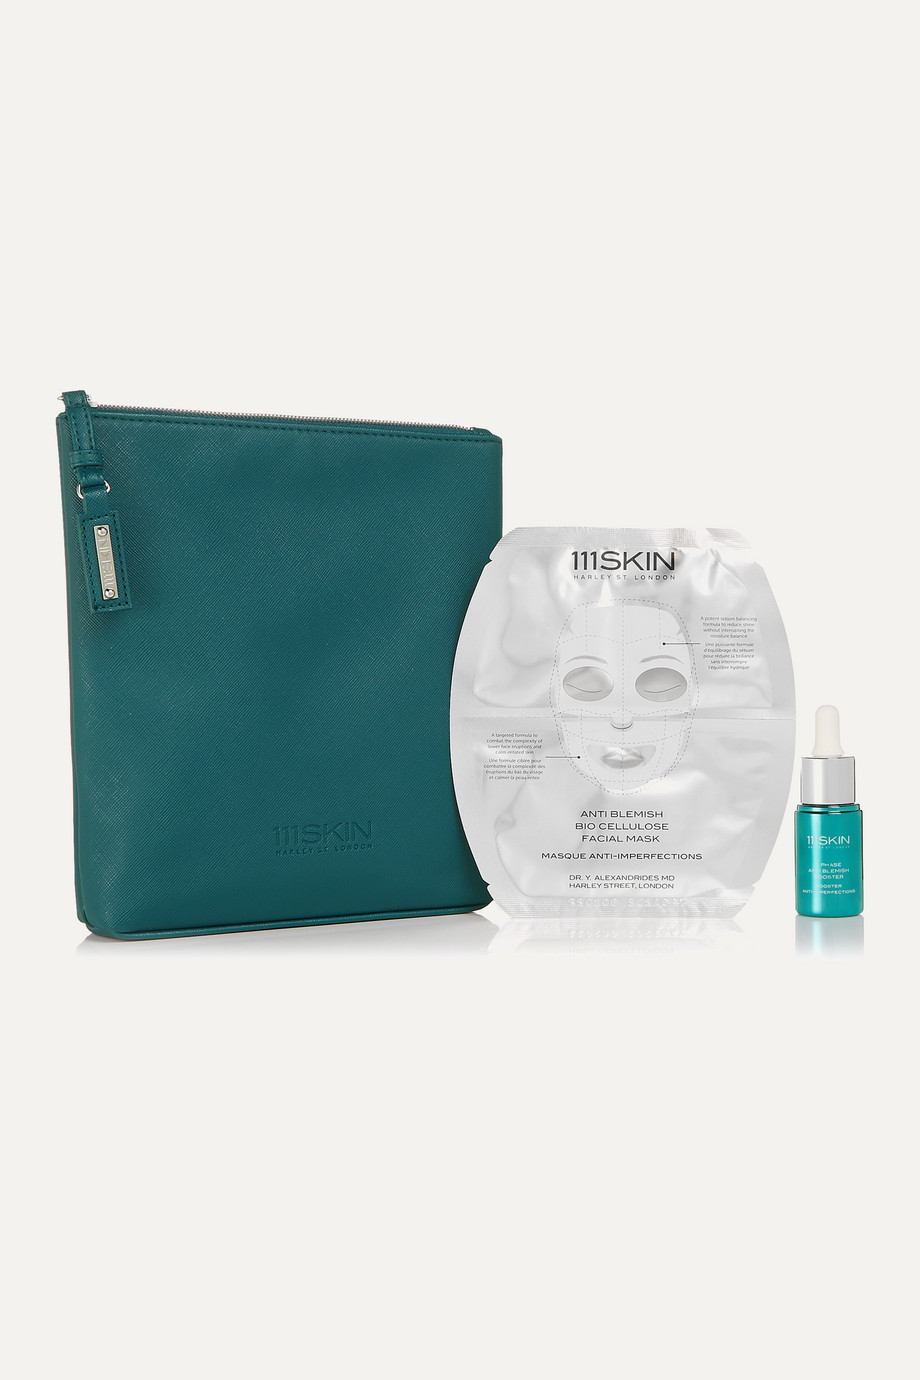 111SKIN The Clarifying Kit